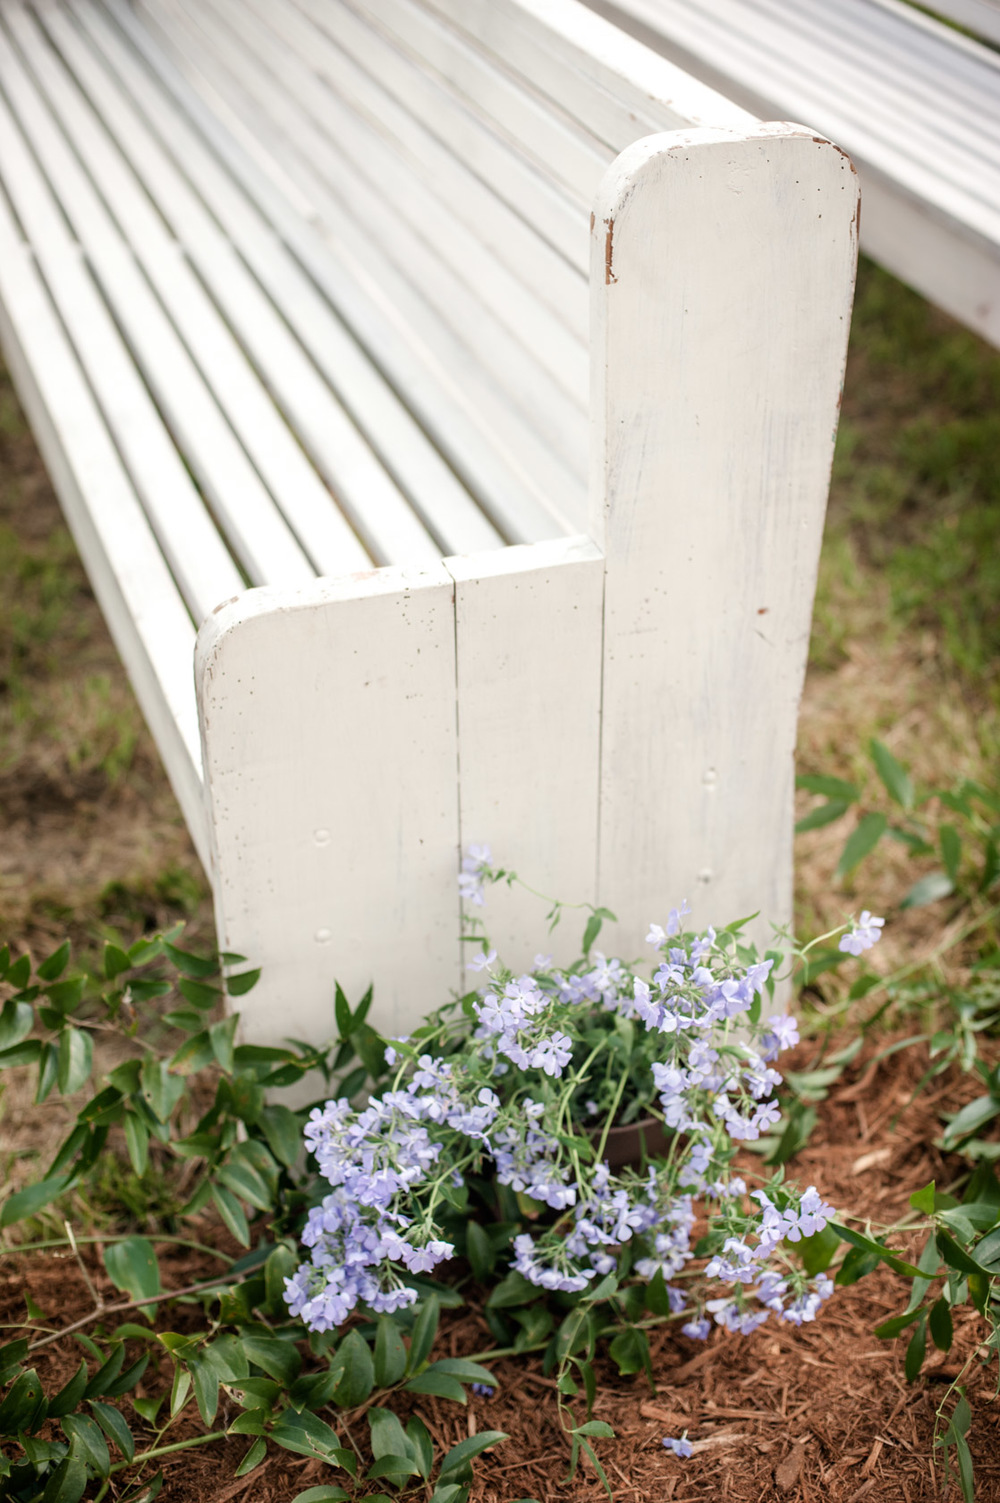 Church pews at an outdoor, Alabama Wedding. Photos by Kelli + Daniel Taylor Photography